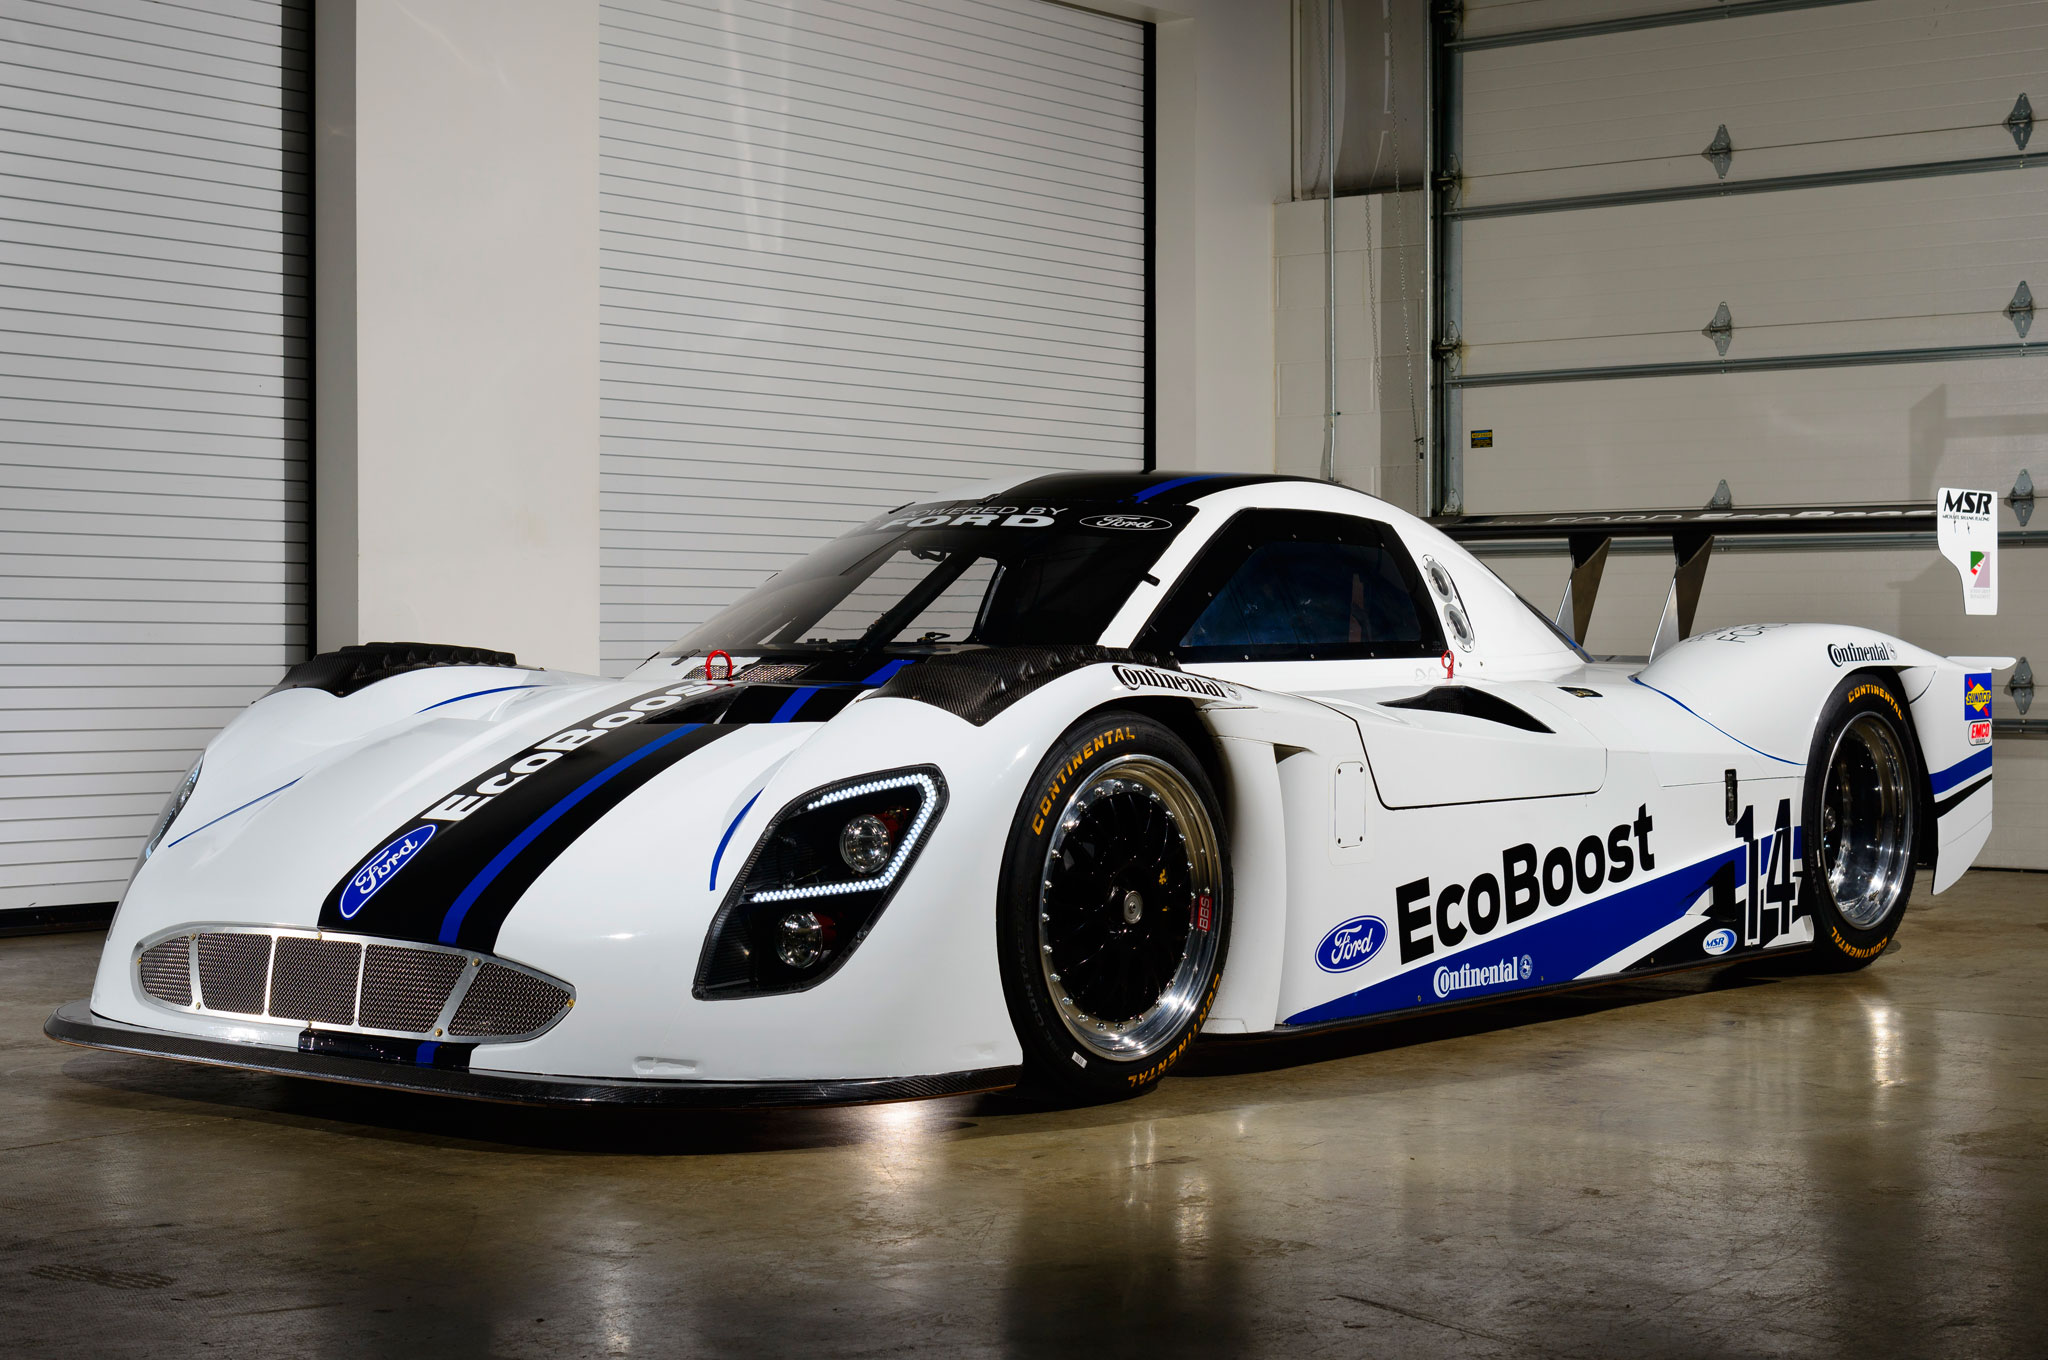 ford-daytona-prototype-car-with-new-ecoboost-left-side.jpg